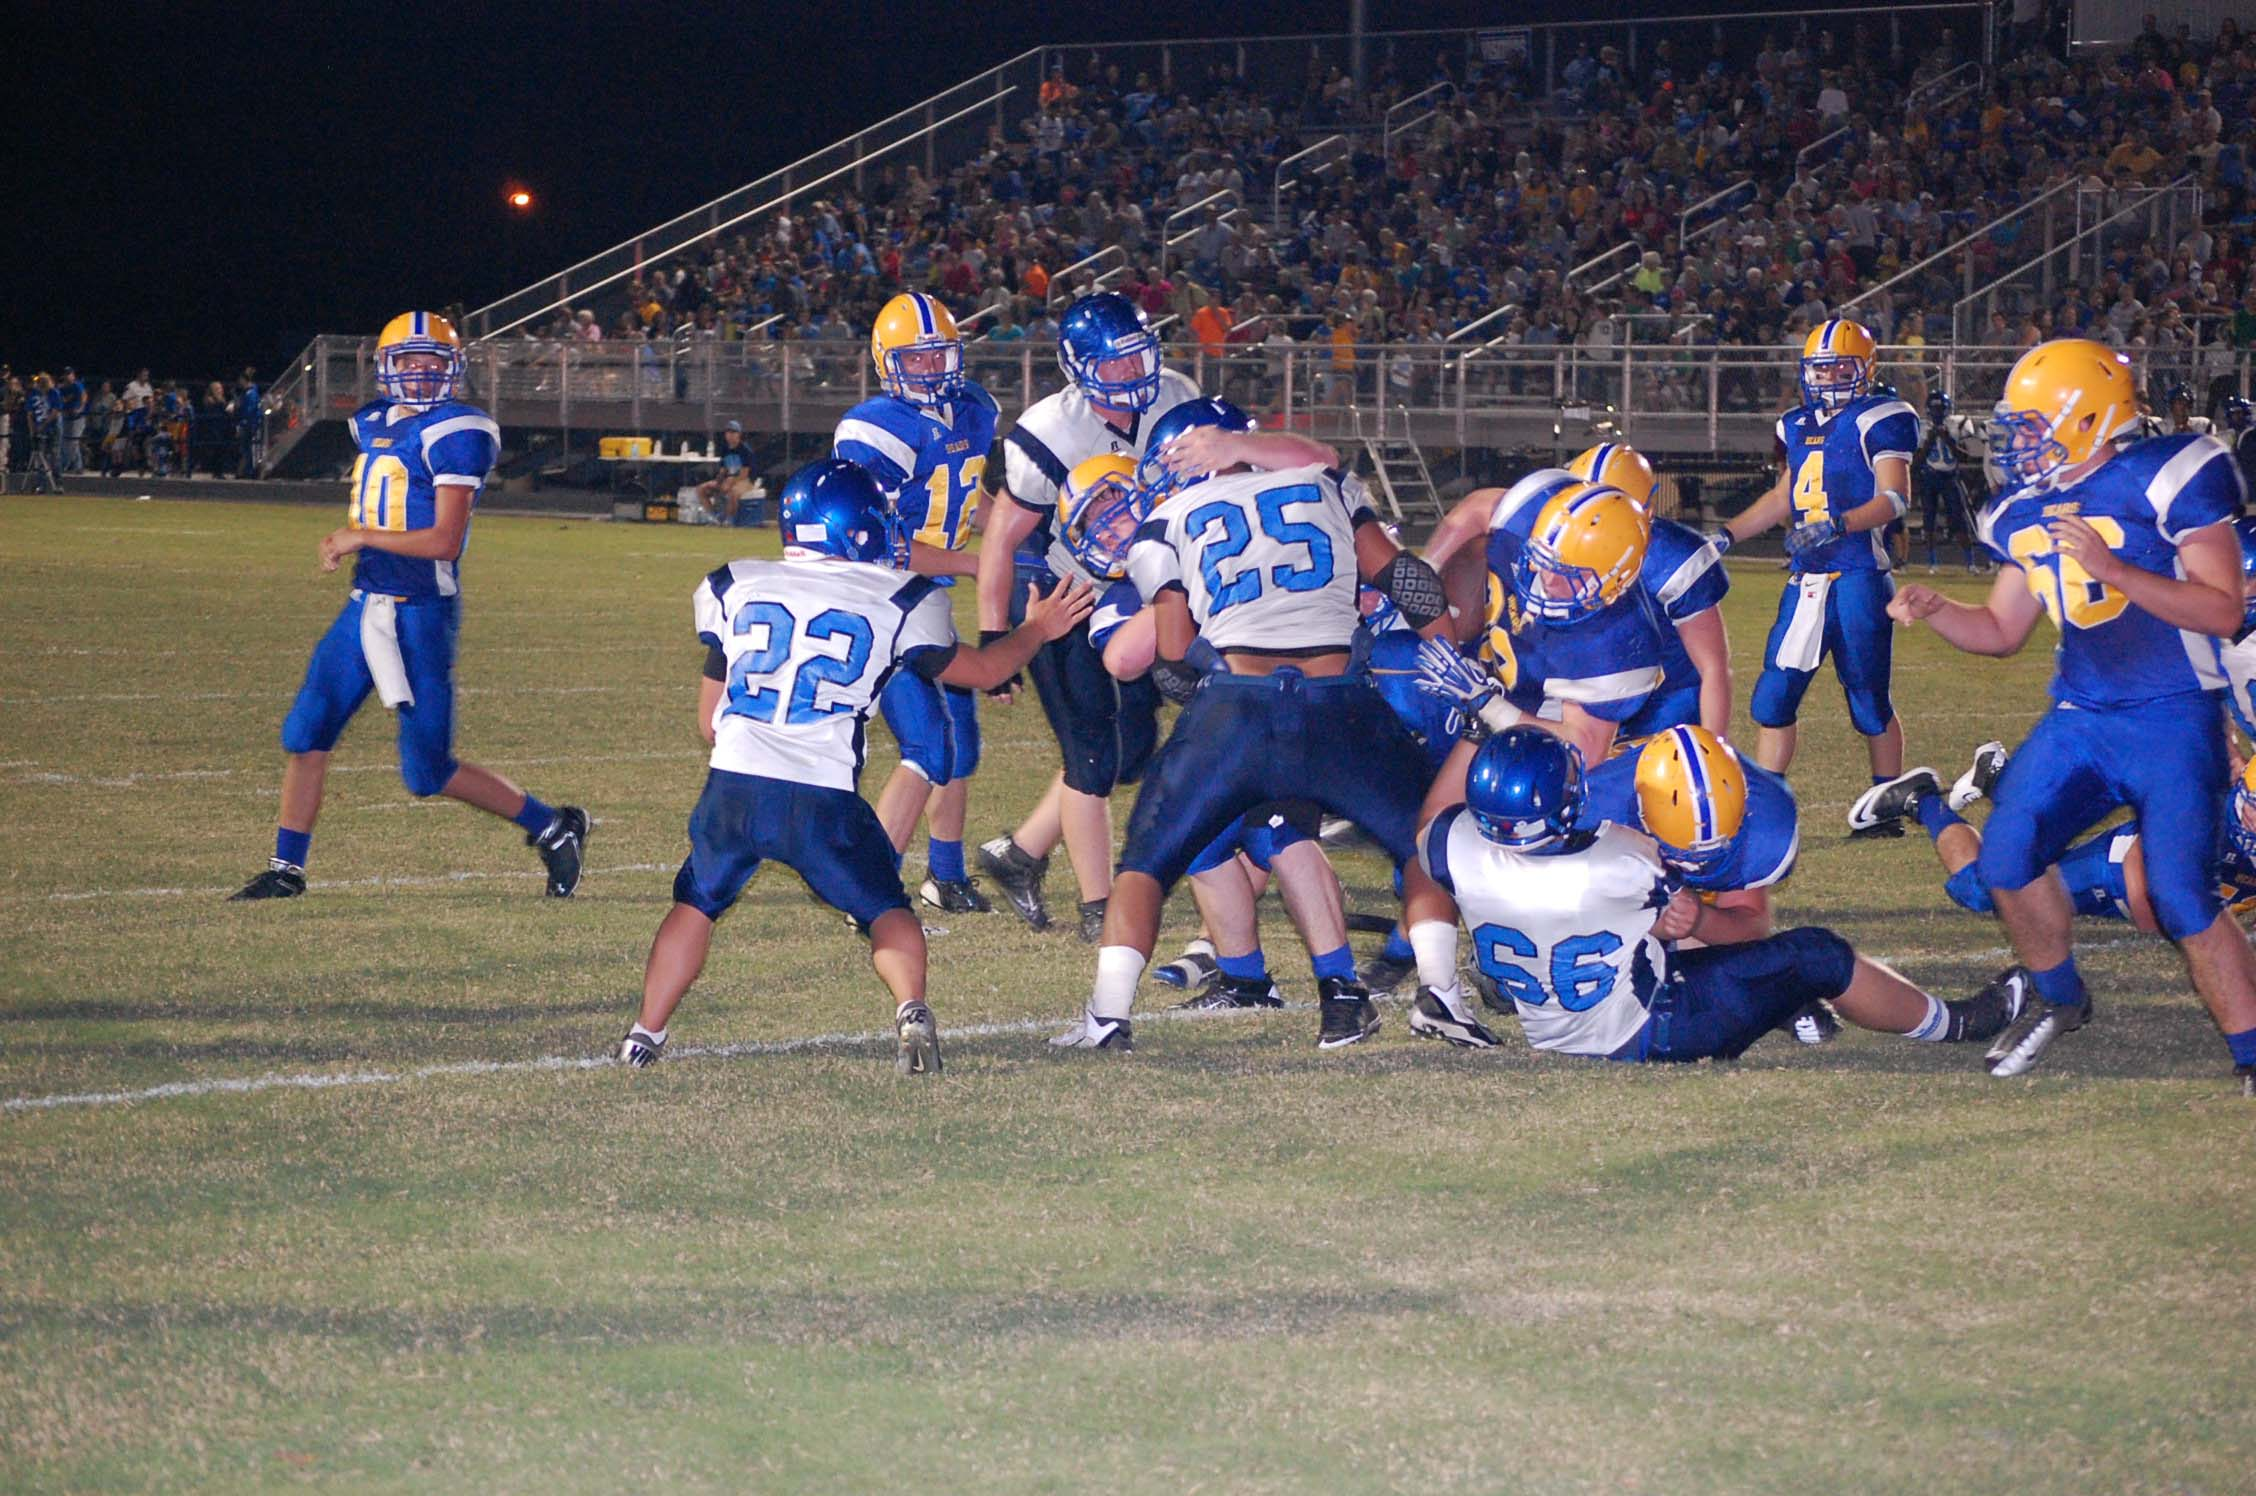 Chase Willis goes up the middle for one of his three touchdowns last Friday night in Ava's 44-7 SCA win over Salem.